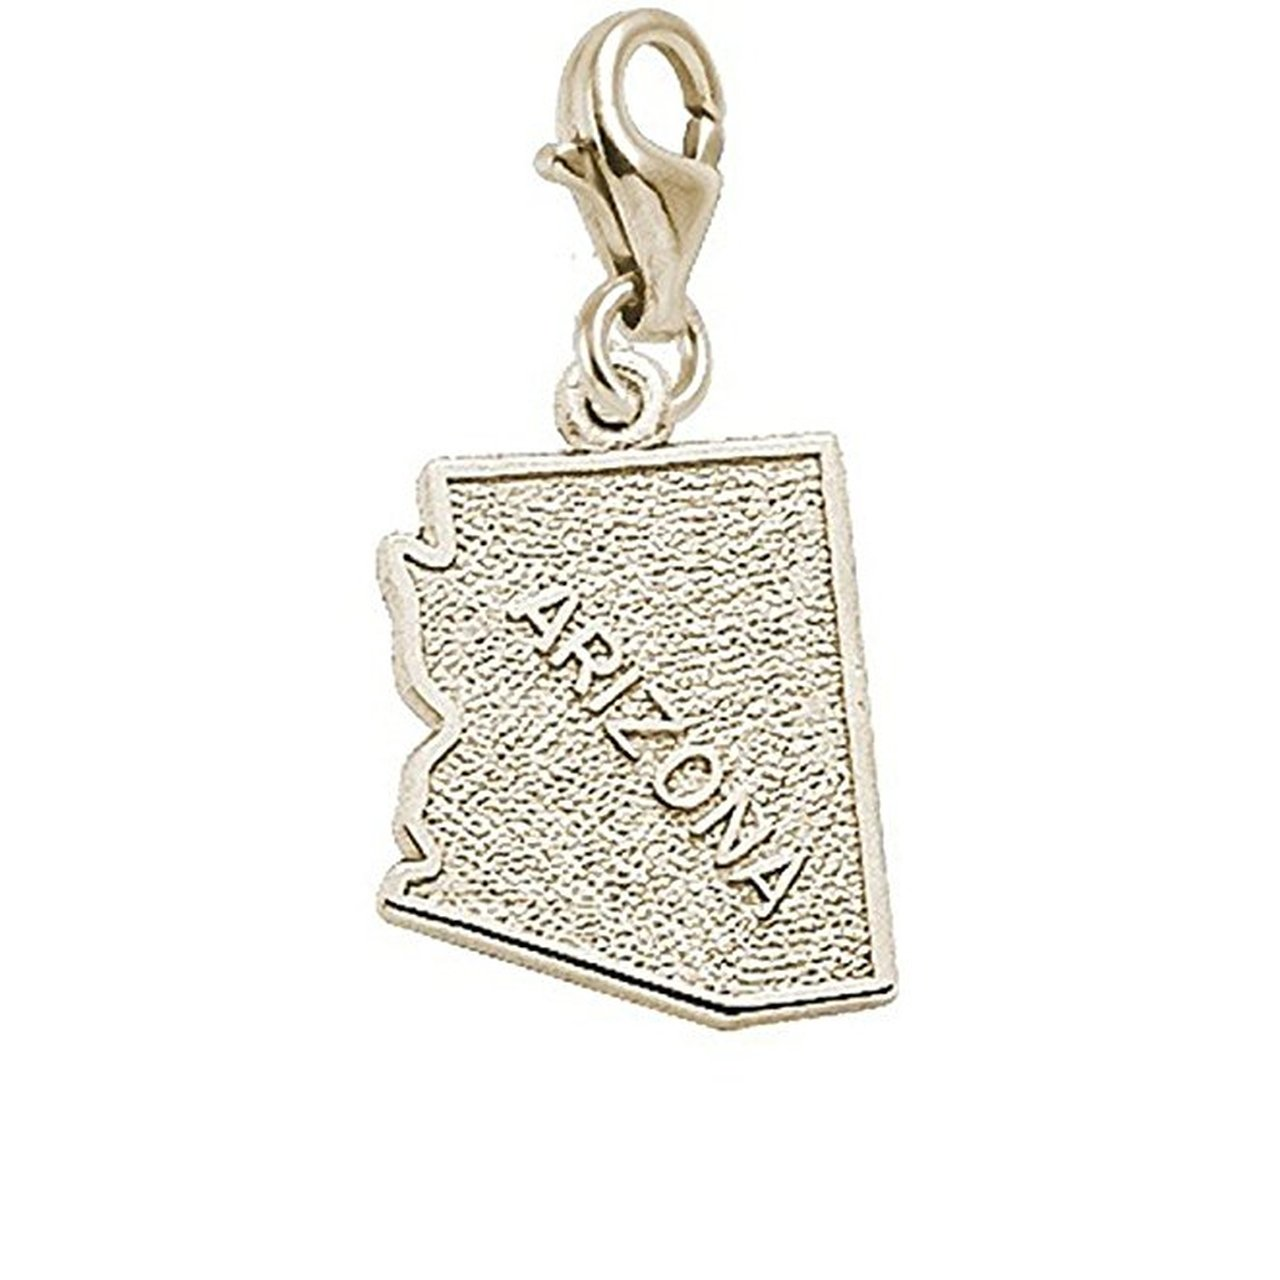 10k Yellow Gold Arizona Charm With Lobster Claw Clasp Charms for Bracelets and Necklaces